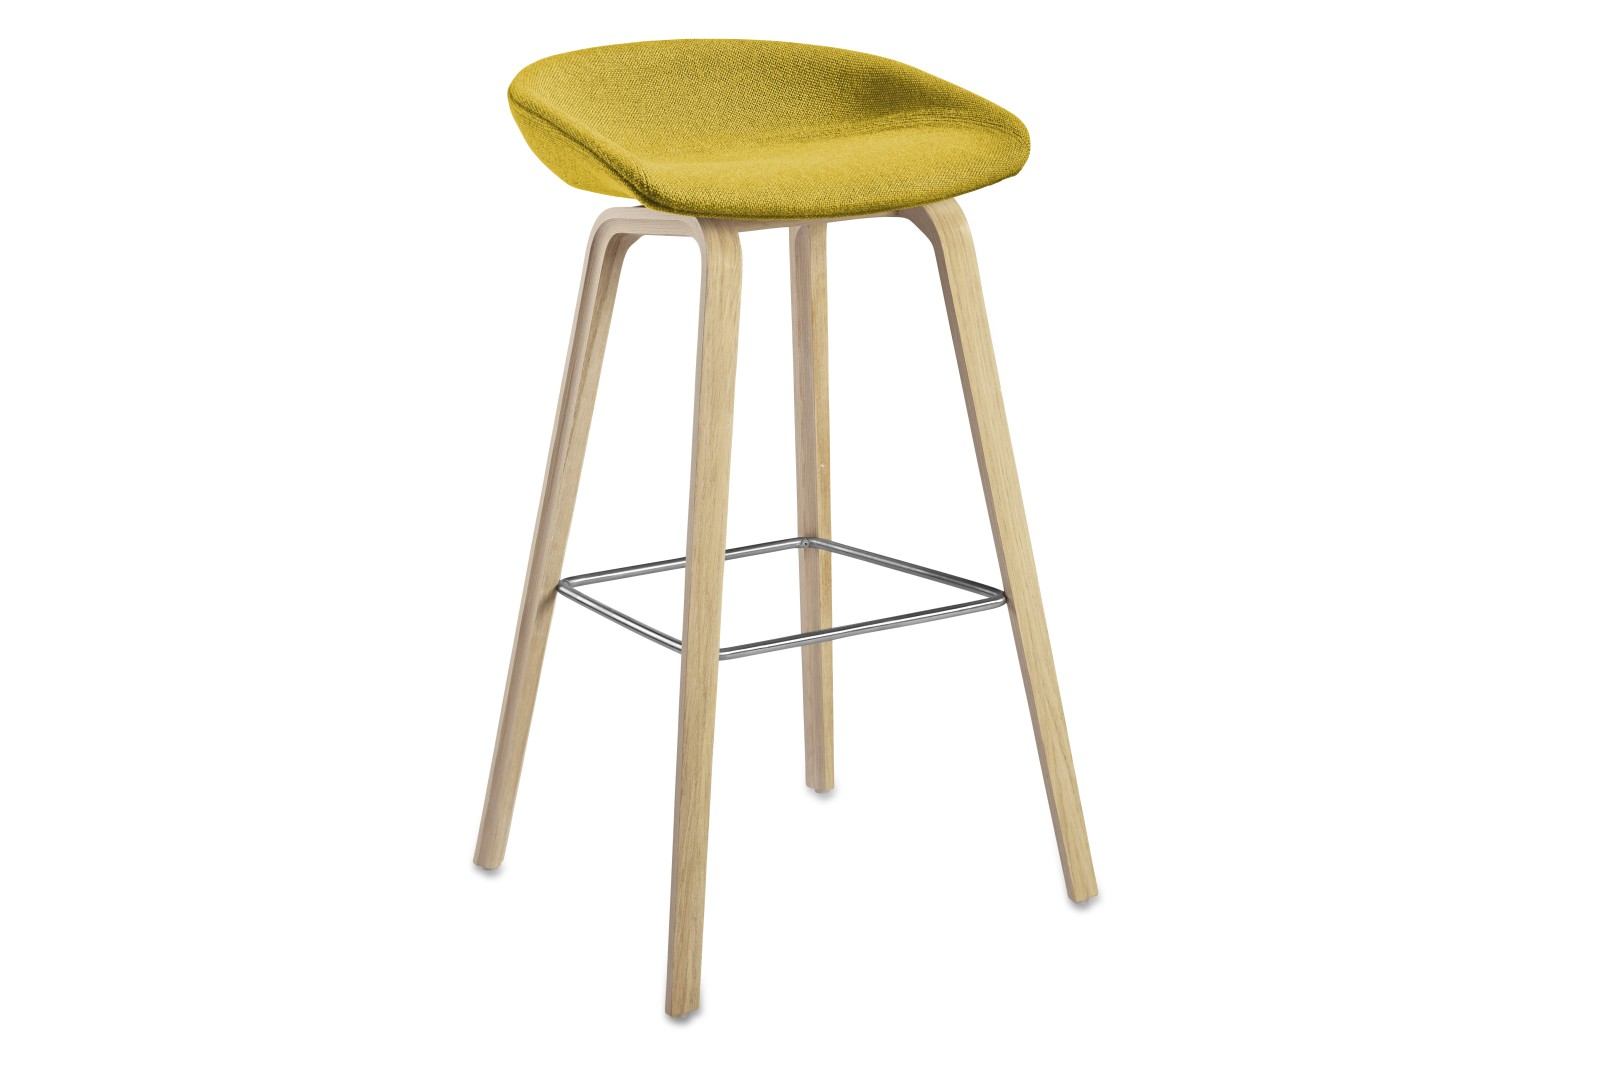 About A Stool AAS33 High Stool, Soap Treated Oak Legs Hallingdal 65 100